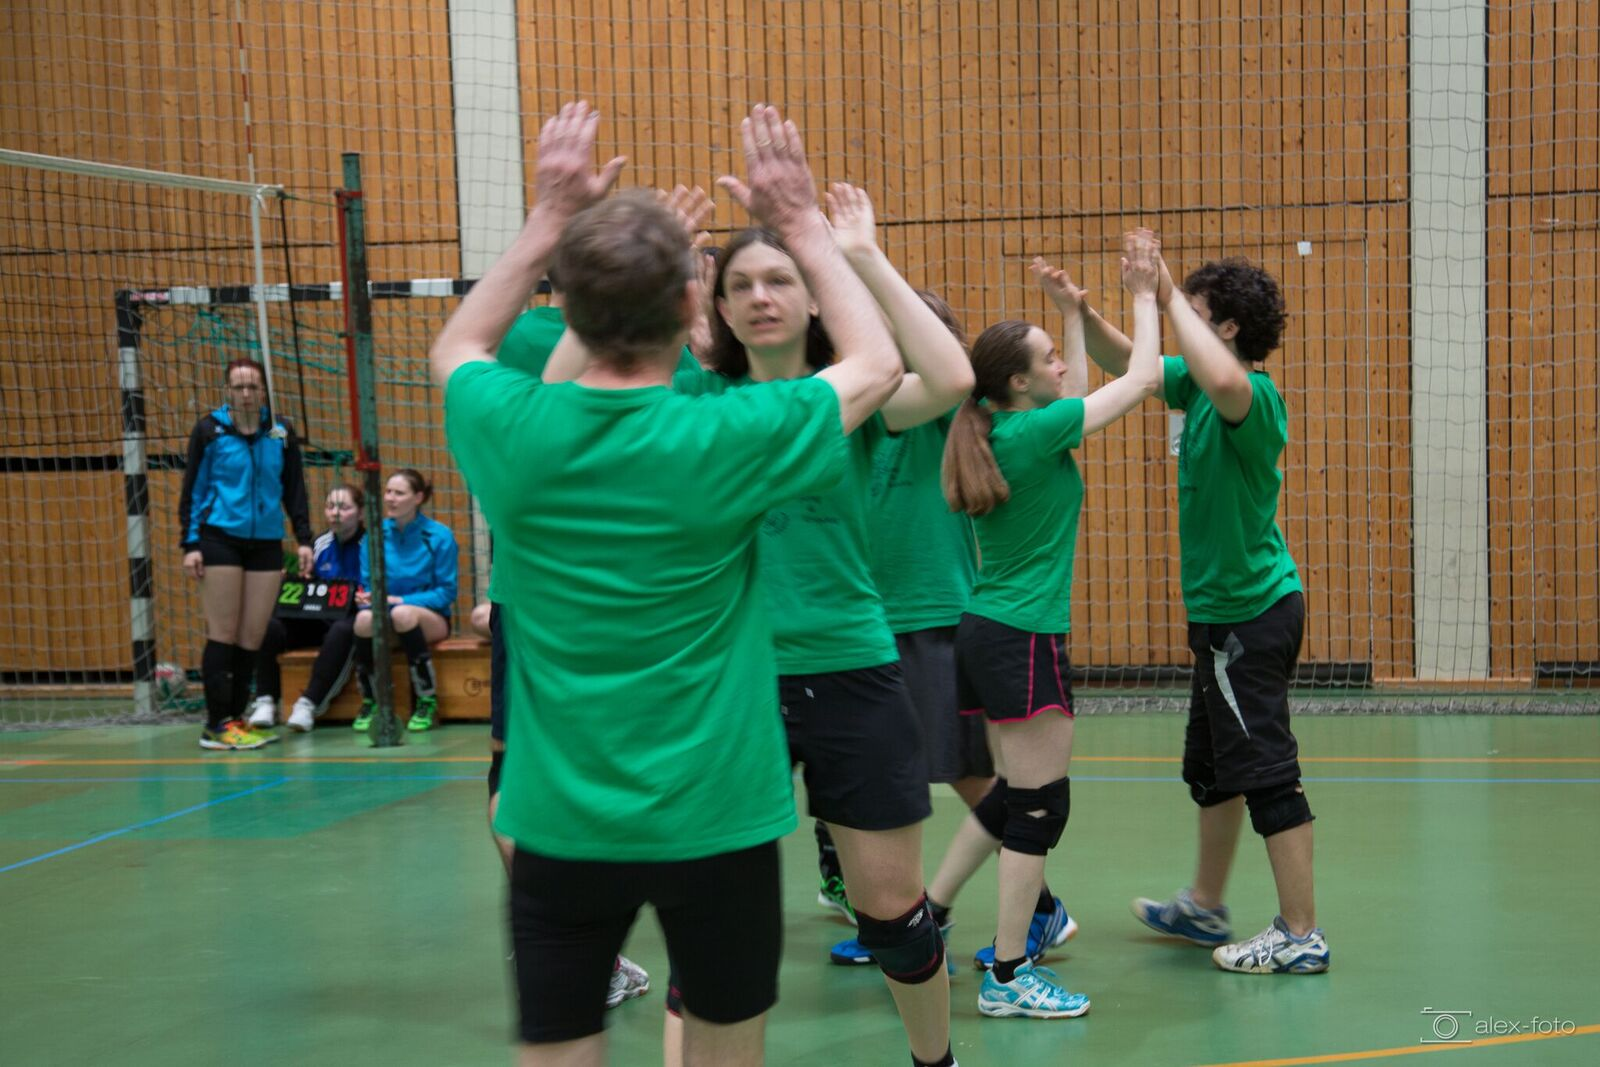 VolleyballturnierV10